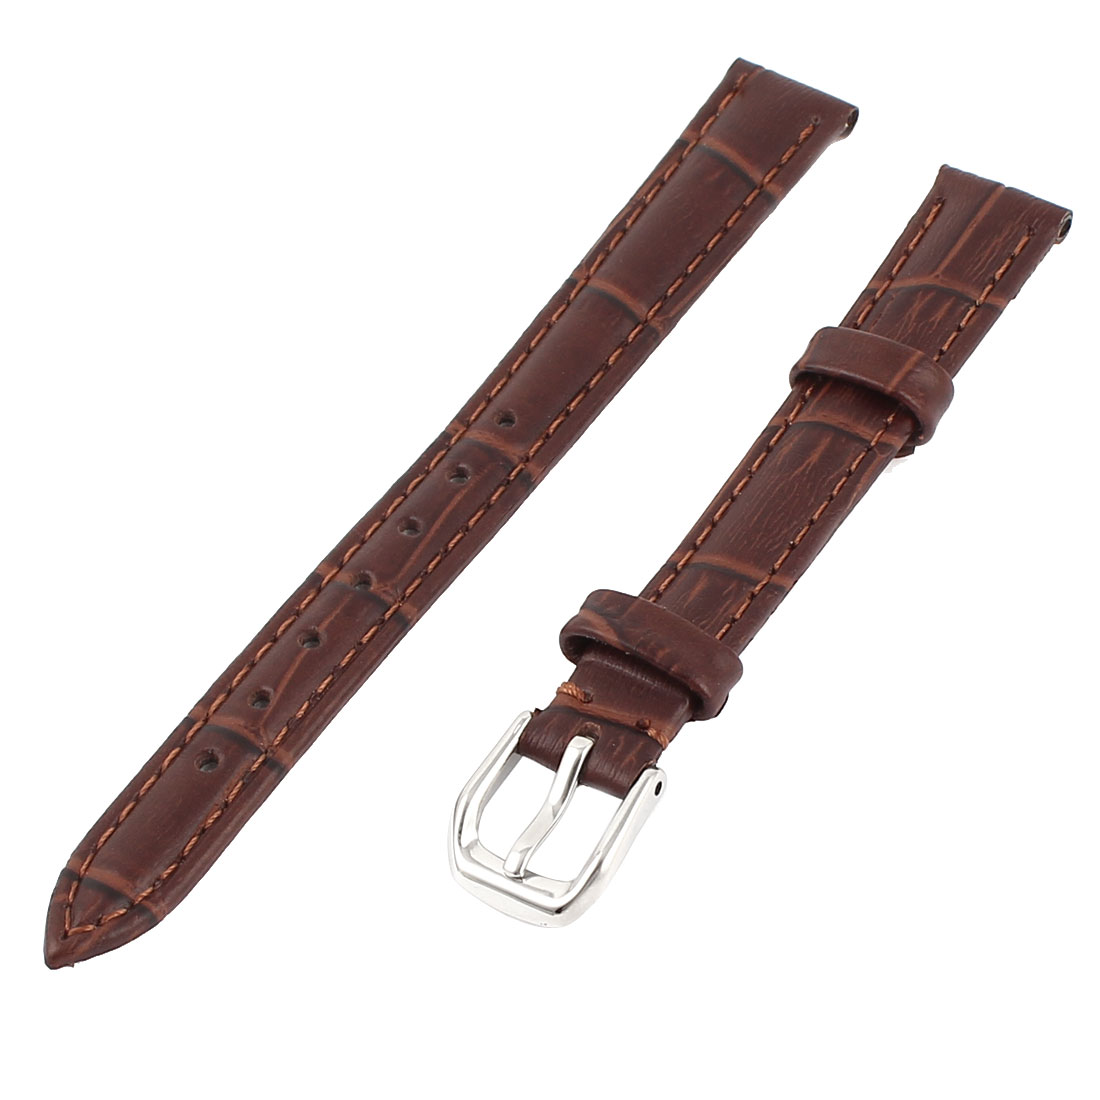 Faux Leather Adjustable Watch Band Belt Bracelet Strap 12mm Width Brown